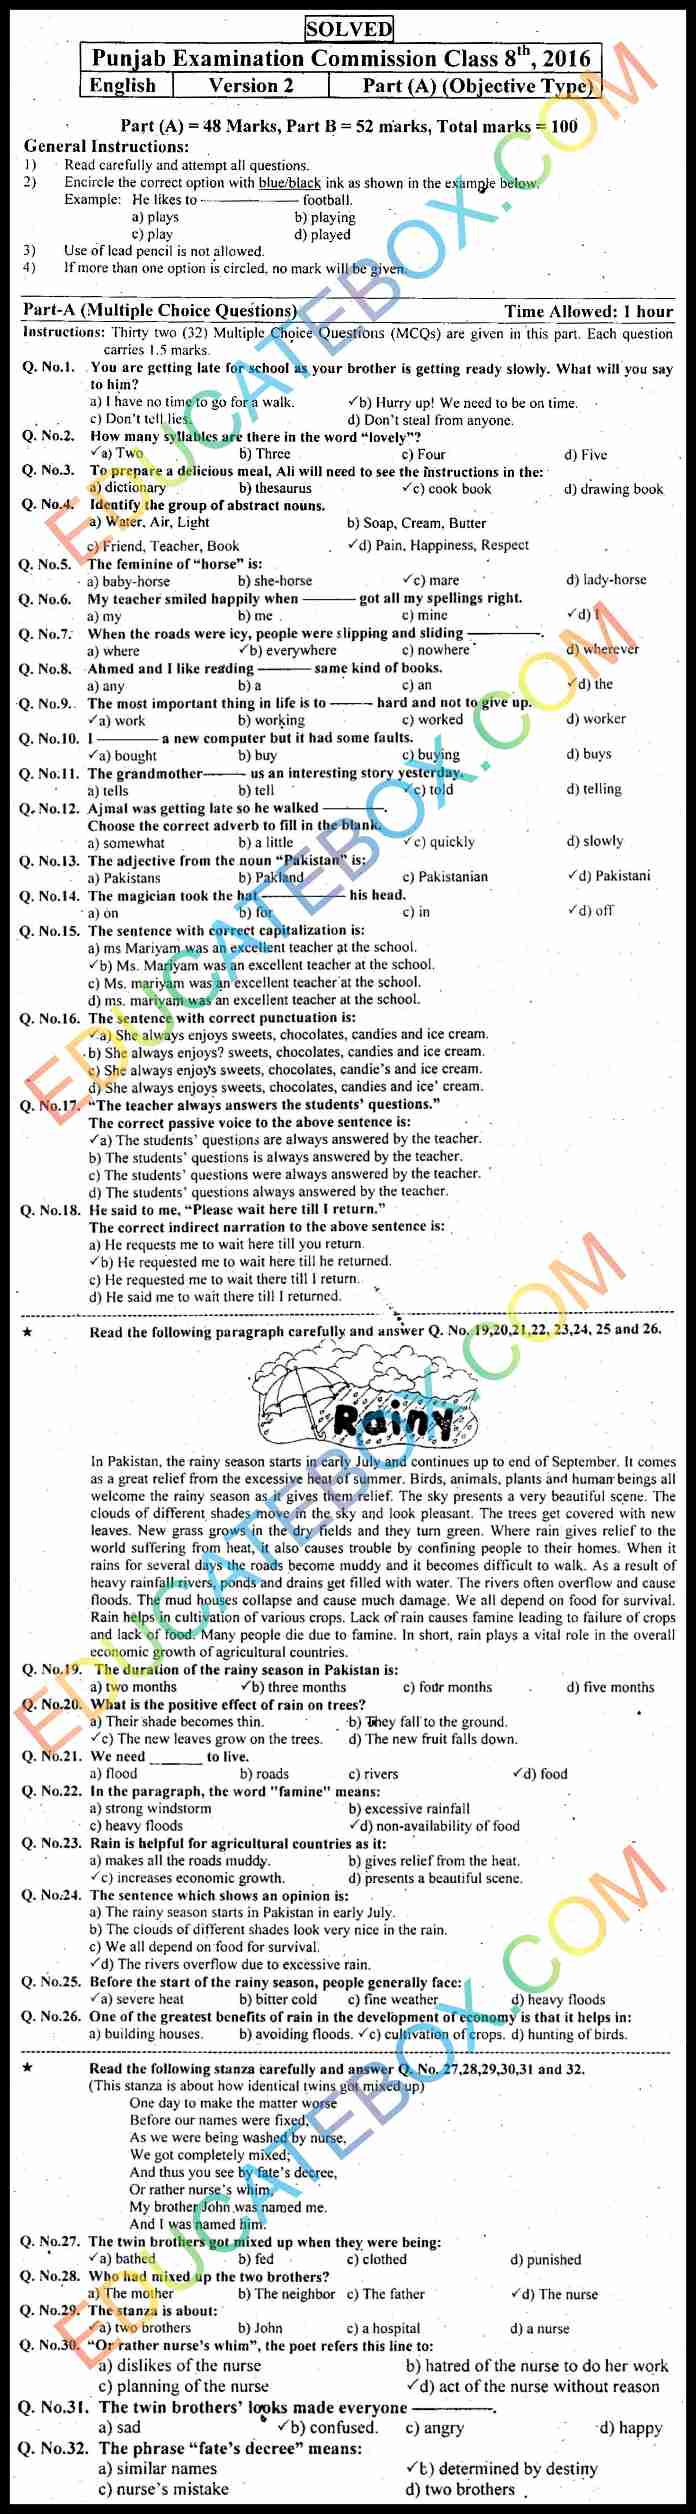 Past Paper 8th Class English 2016 Solved Paper Punjab Board (PEC) Objective Type Version 2